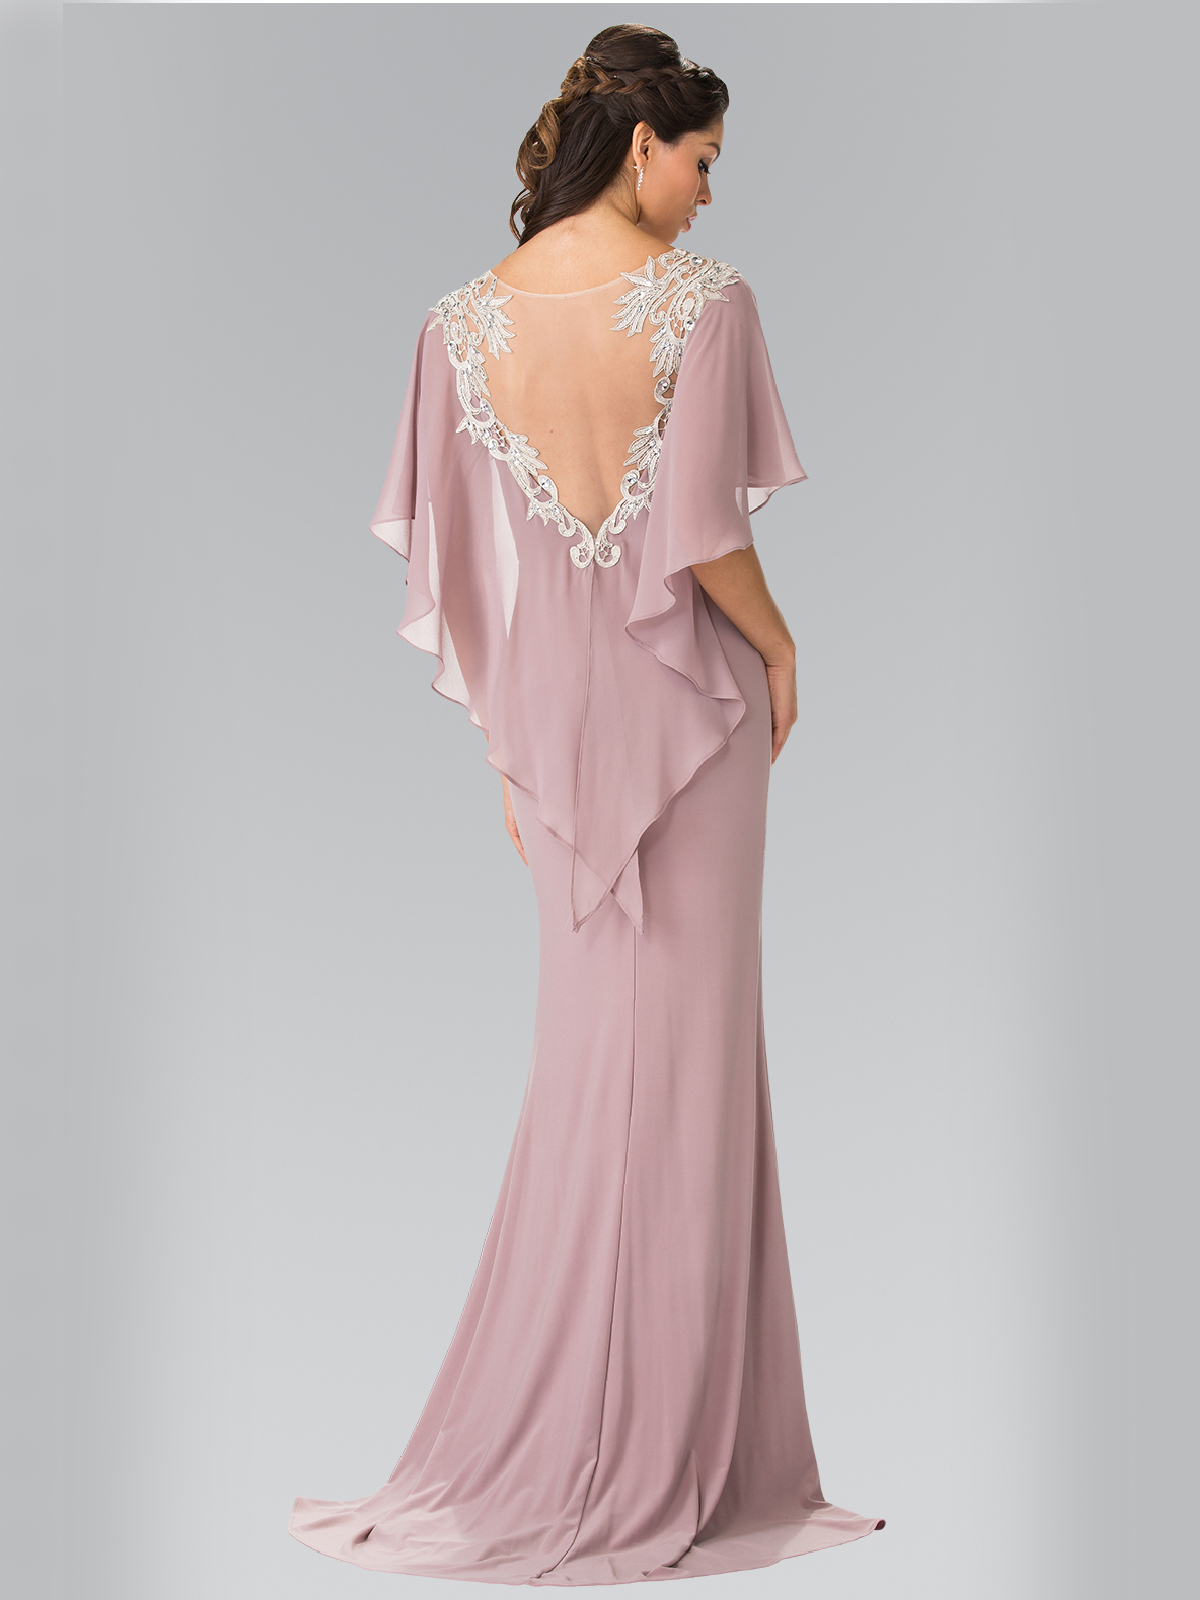 Long Evening Dress With Cape Sung Boutique L A